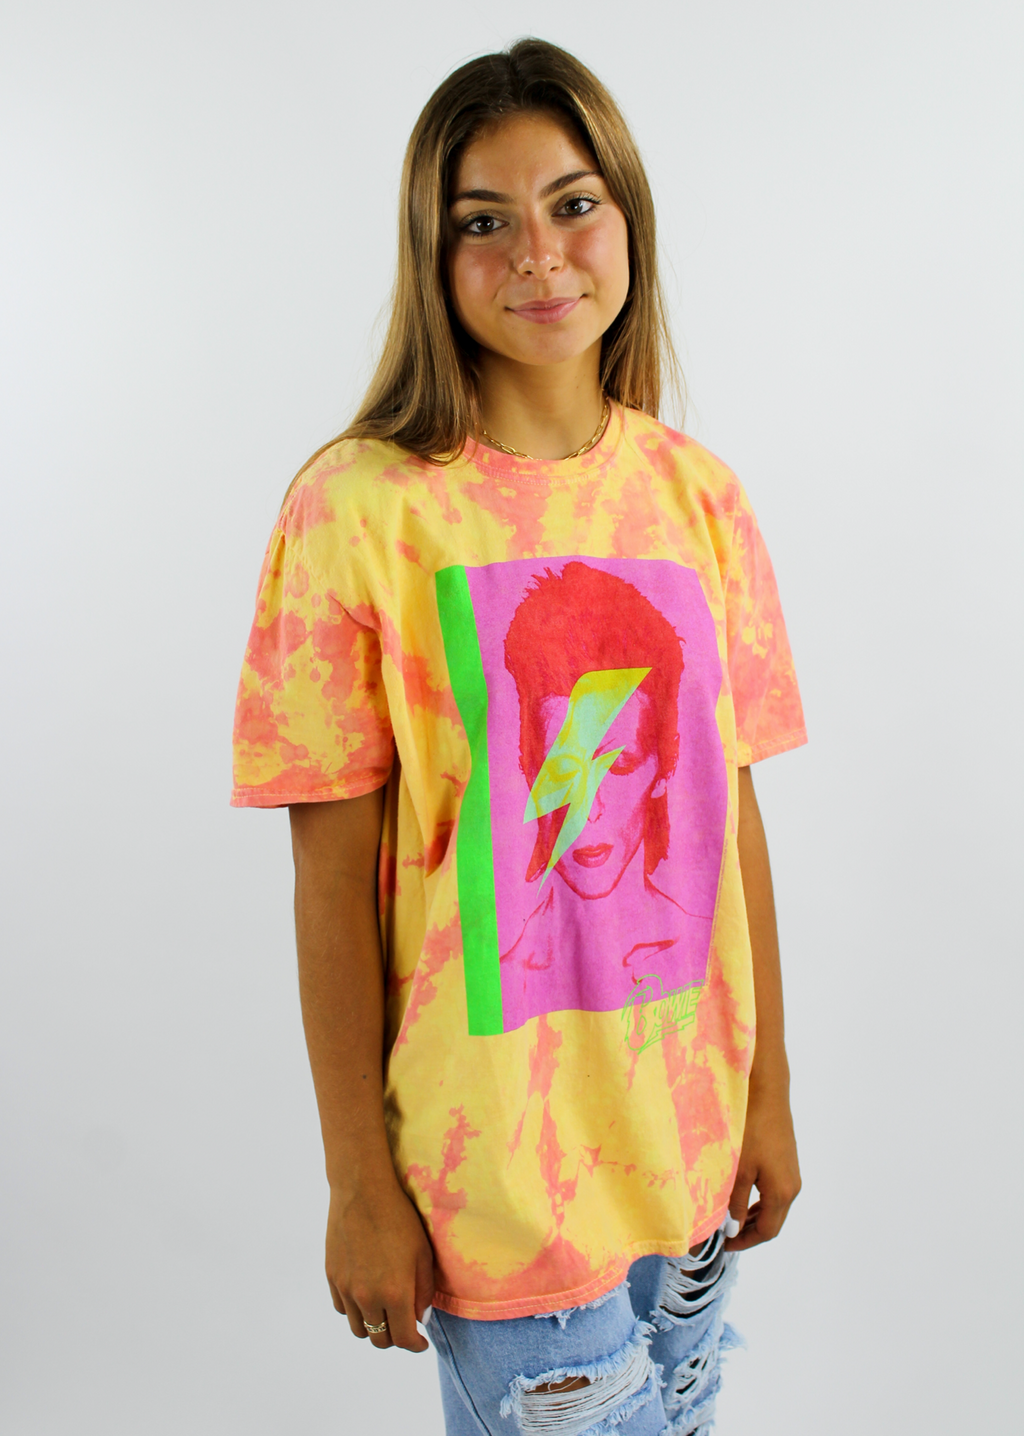 David Bowie Oversized Lightning Tee ★ Orange Tie Dye